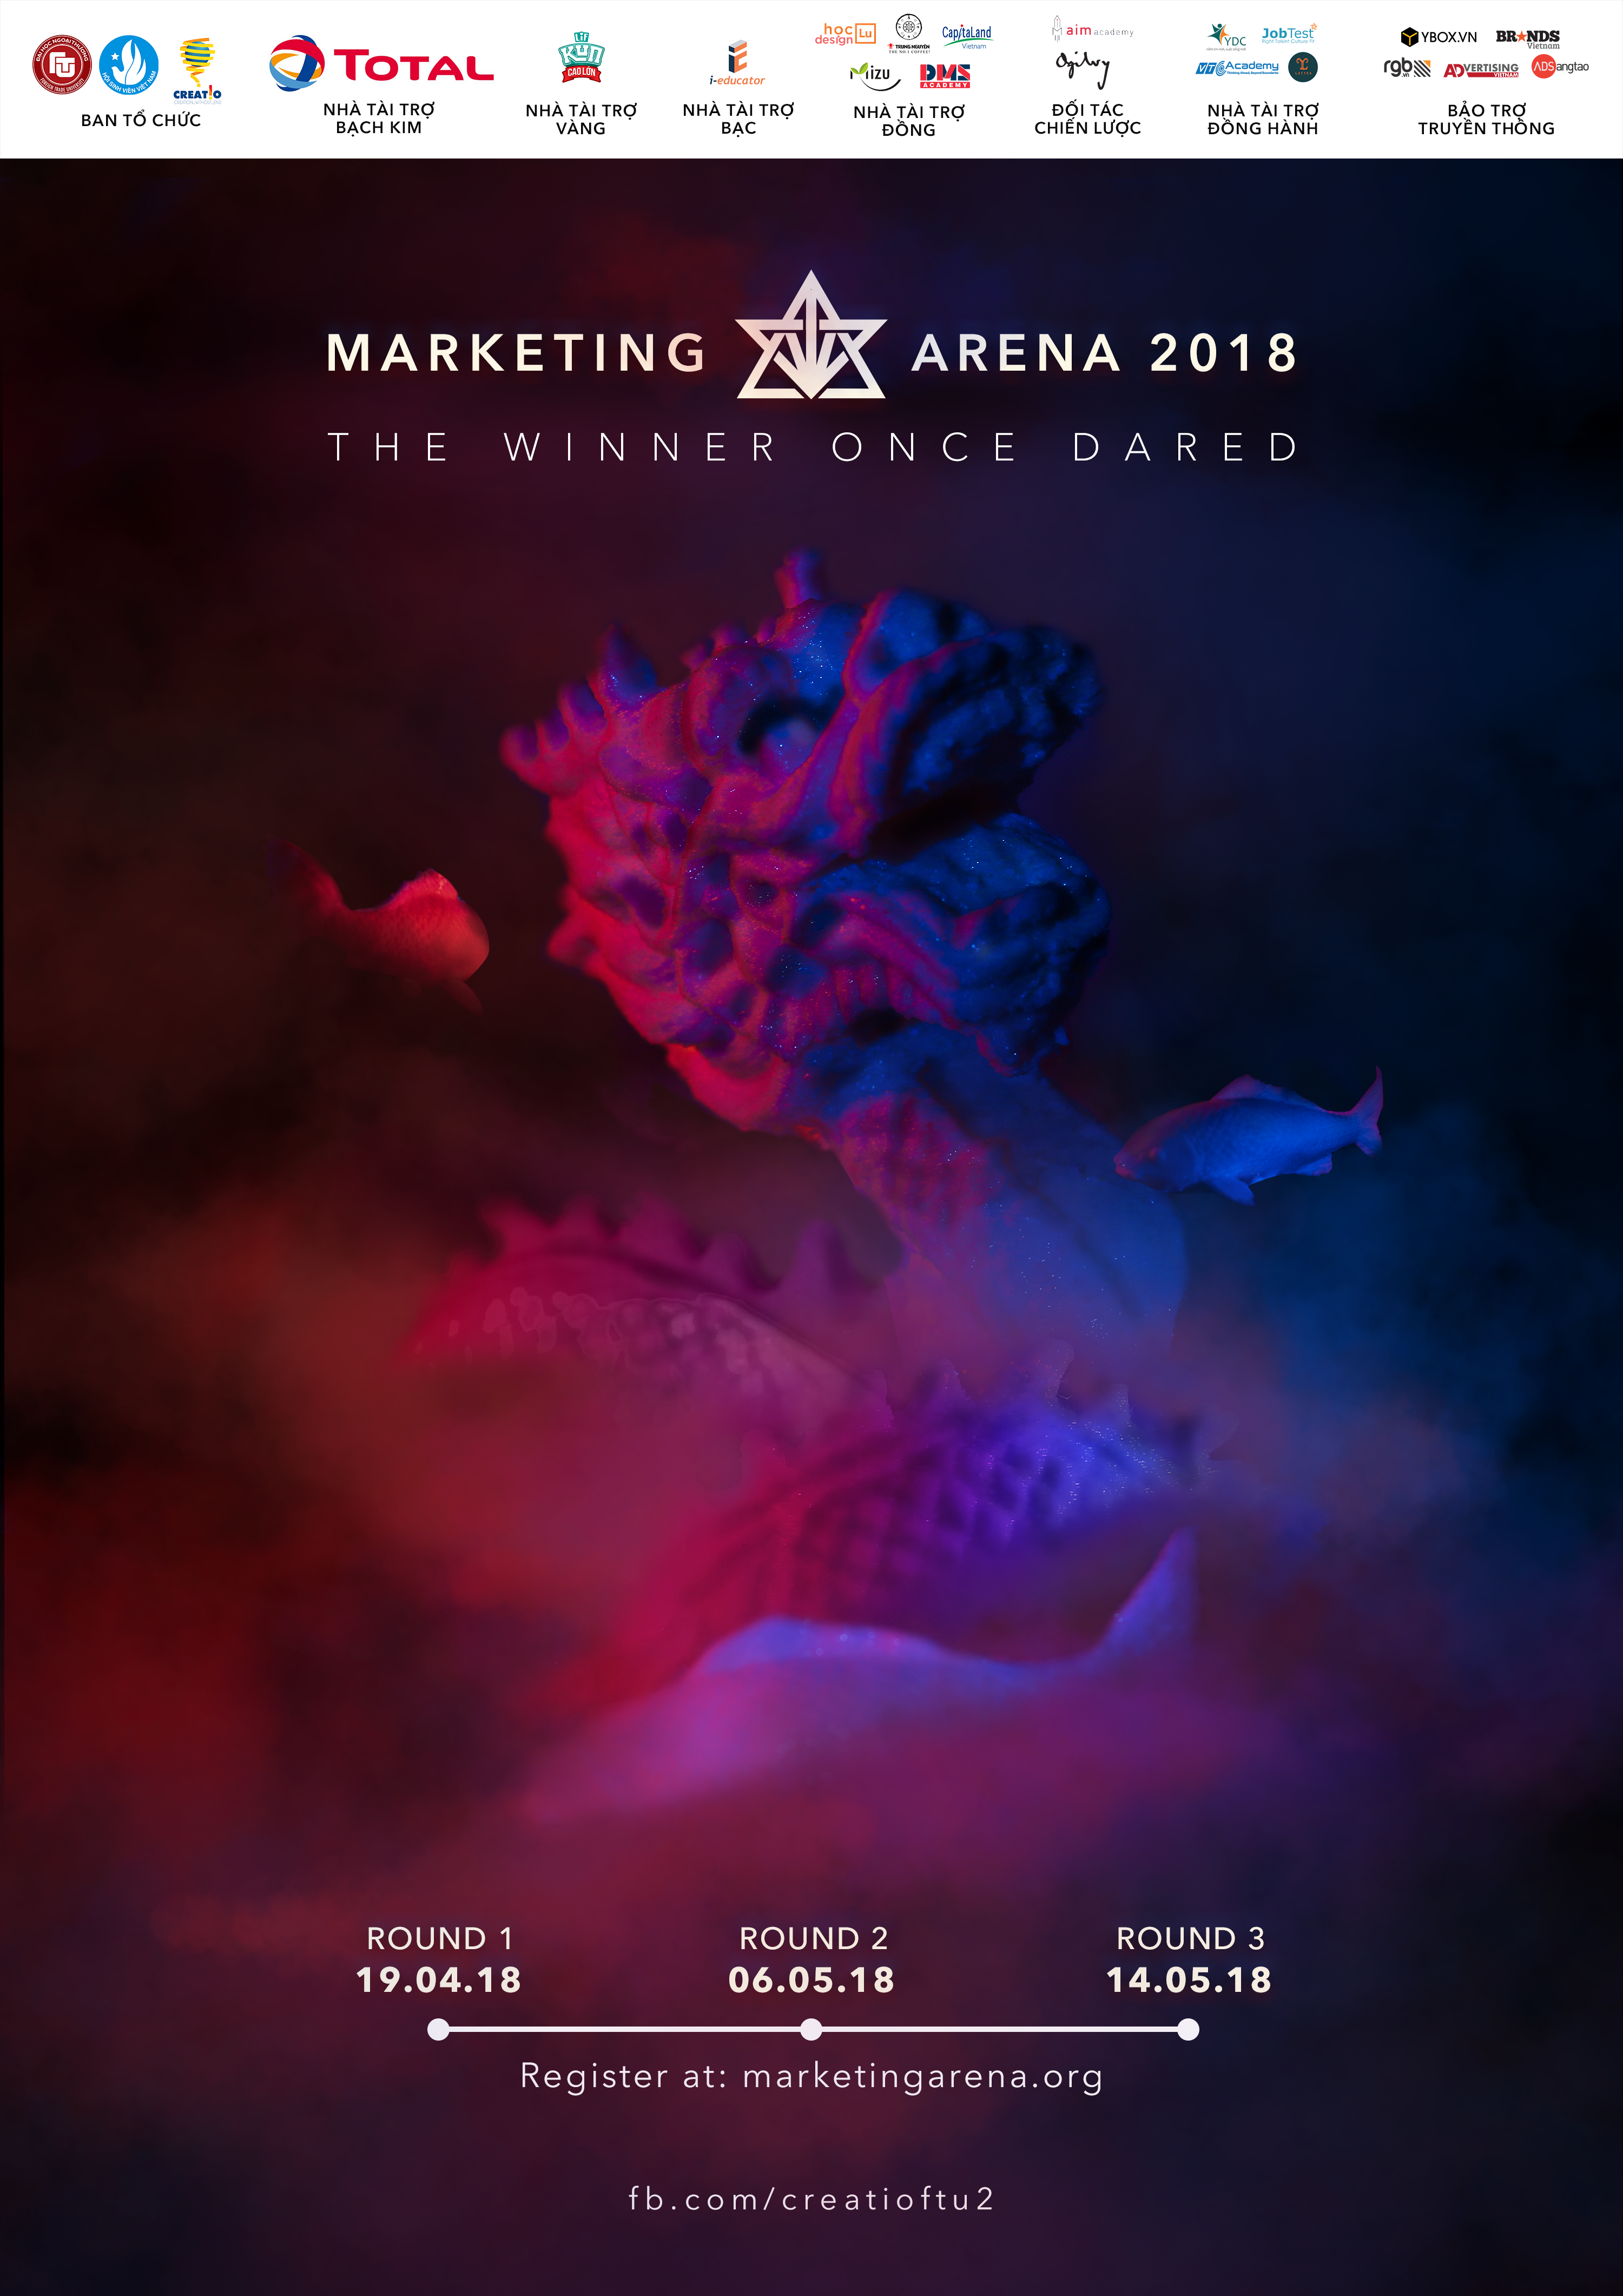 rgb_creative_marketing_arena_contest